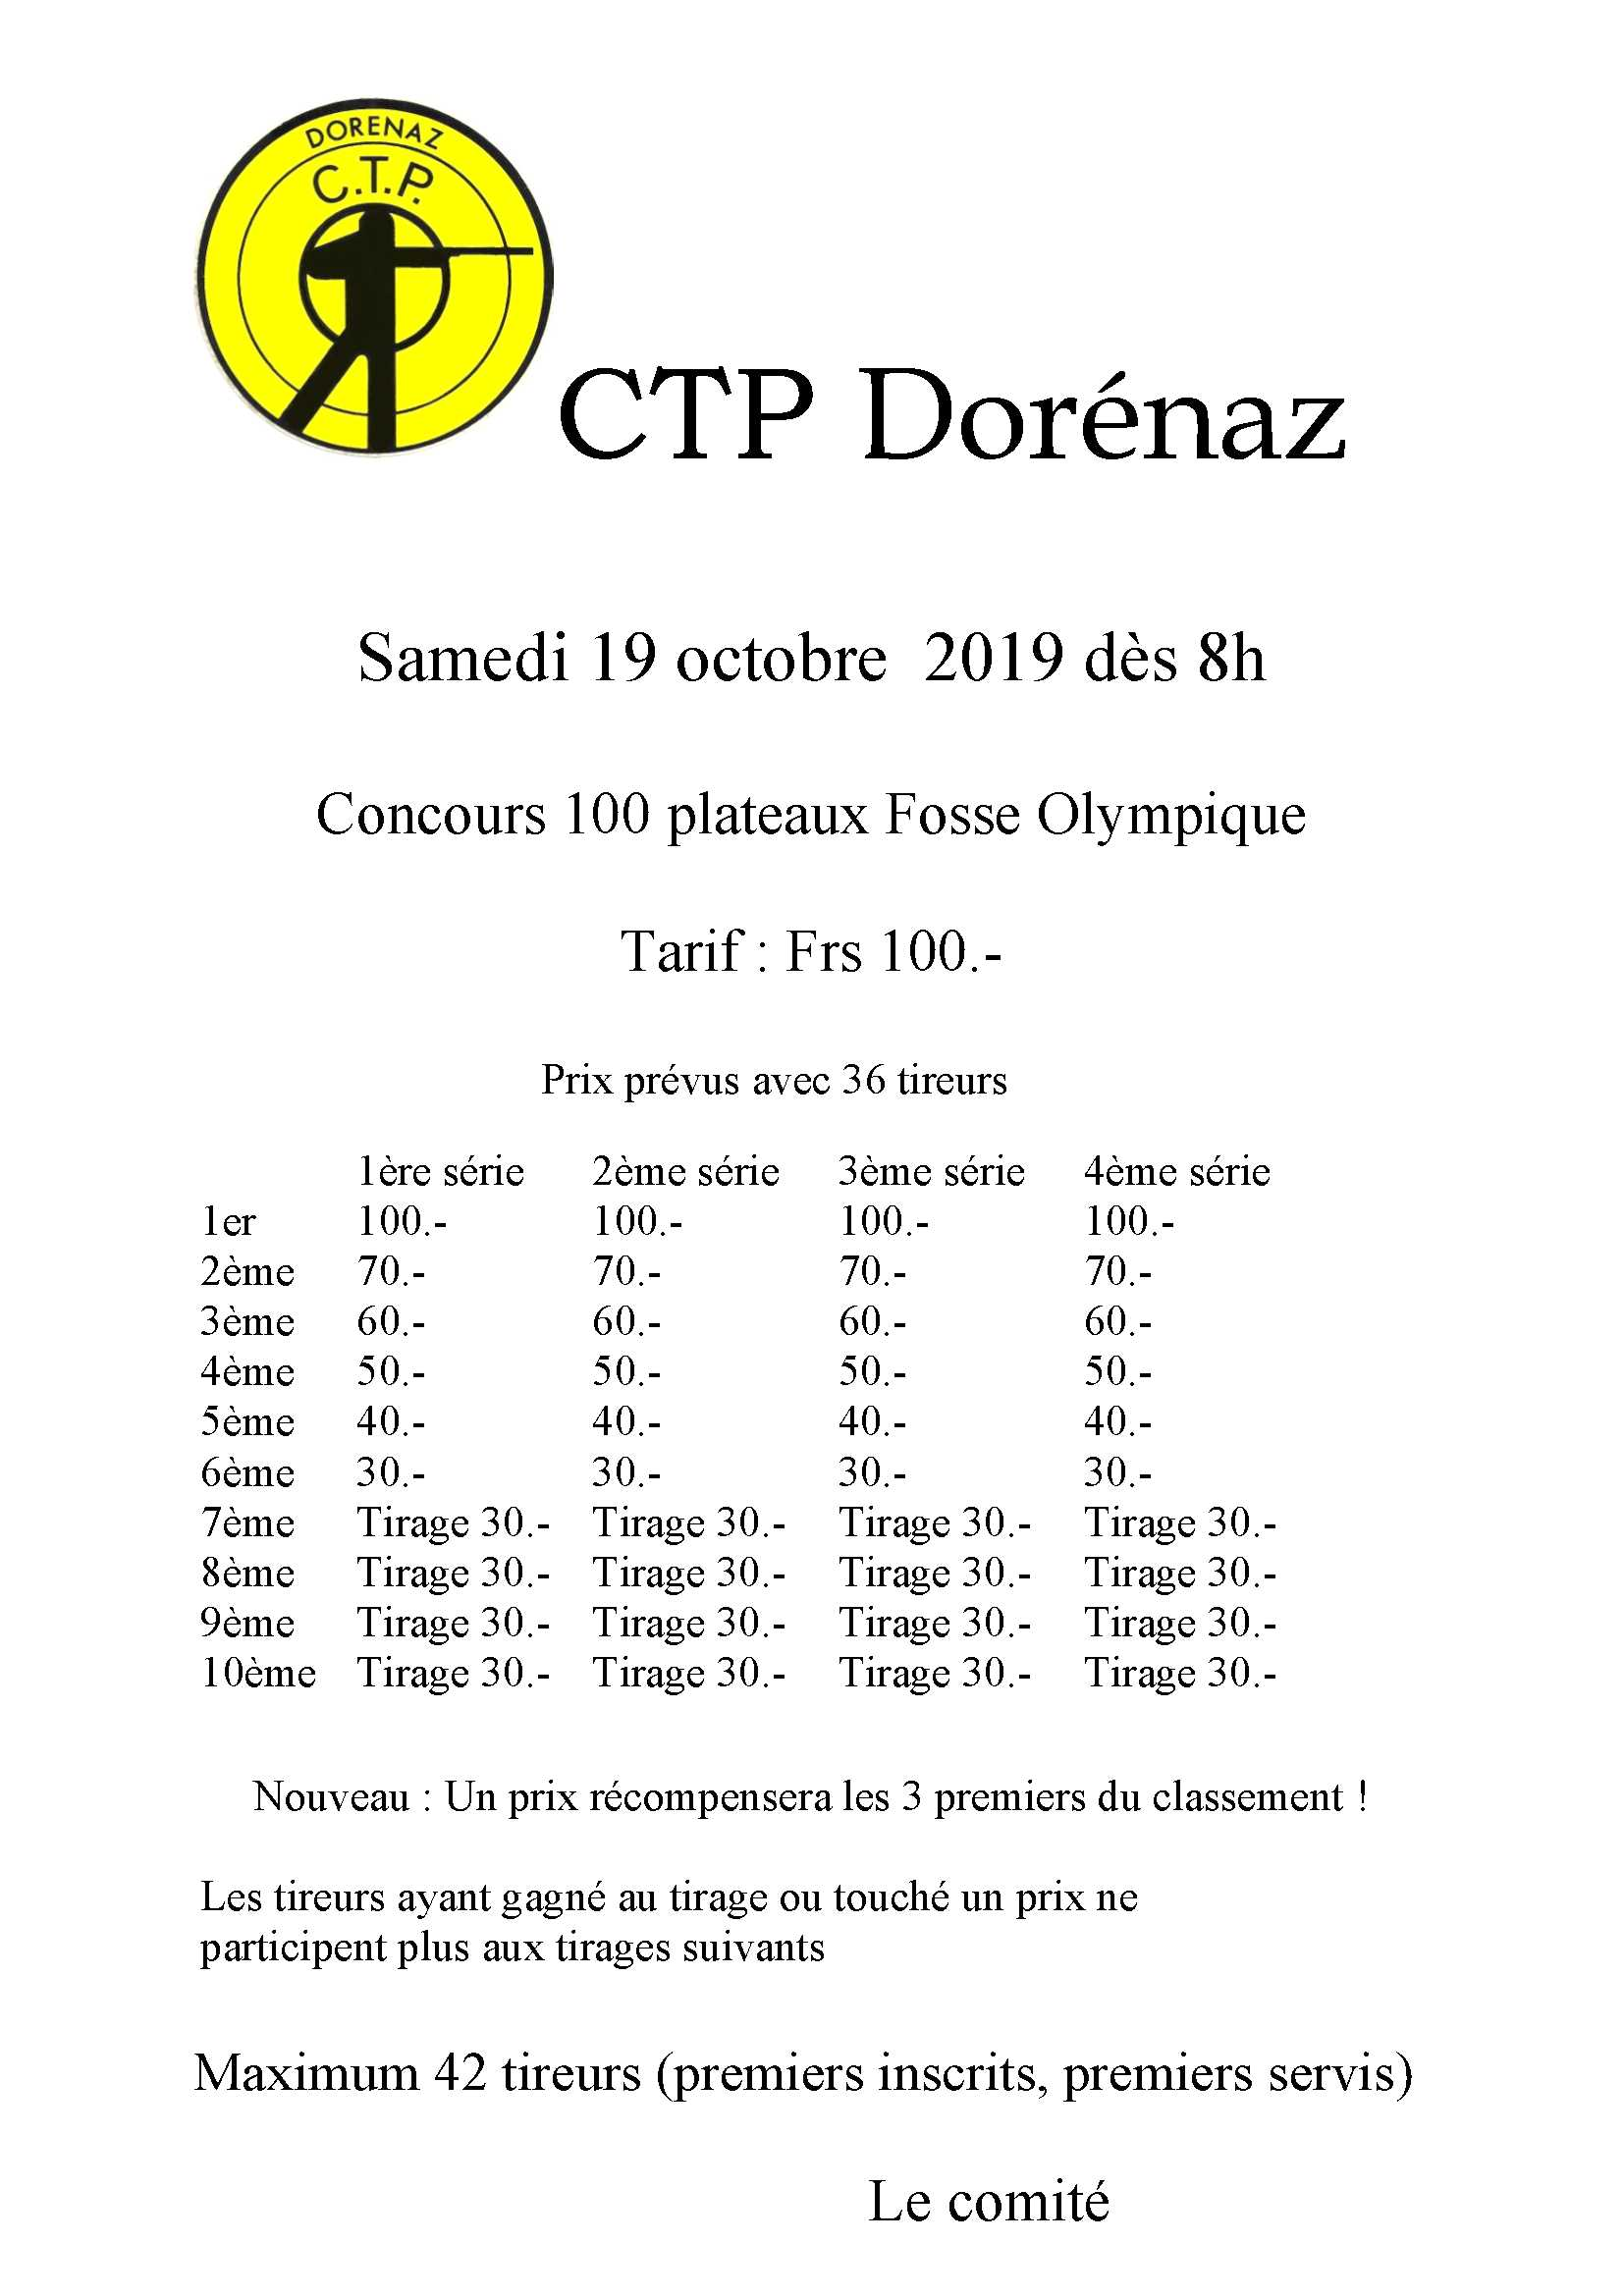 image-8934320-15.09.2018-Concours1.jpg